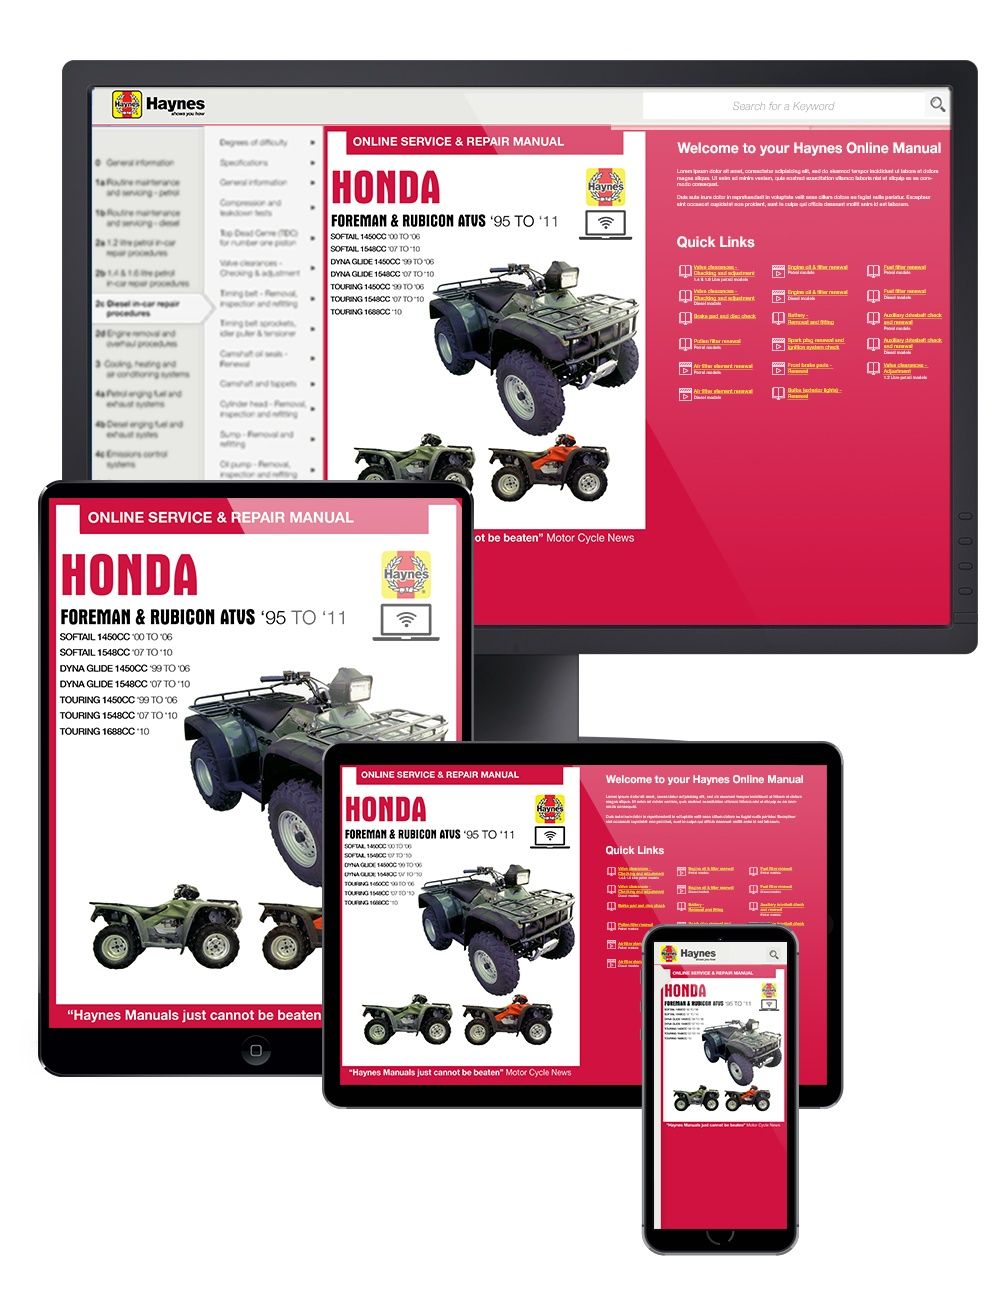 Manual cover for Honda Foreman & Rubicon ATVs Haynes Online Manual covering Foreman 400 (1995 thru 2003), Foreman 450 (1998 thru 2004), and Rubicon 500 (01-11)